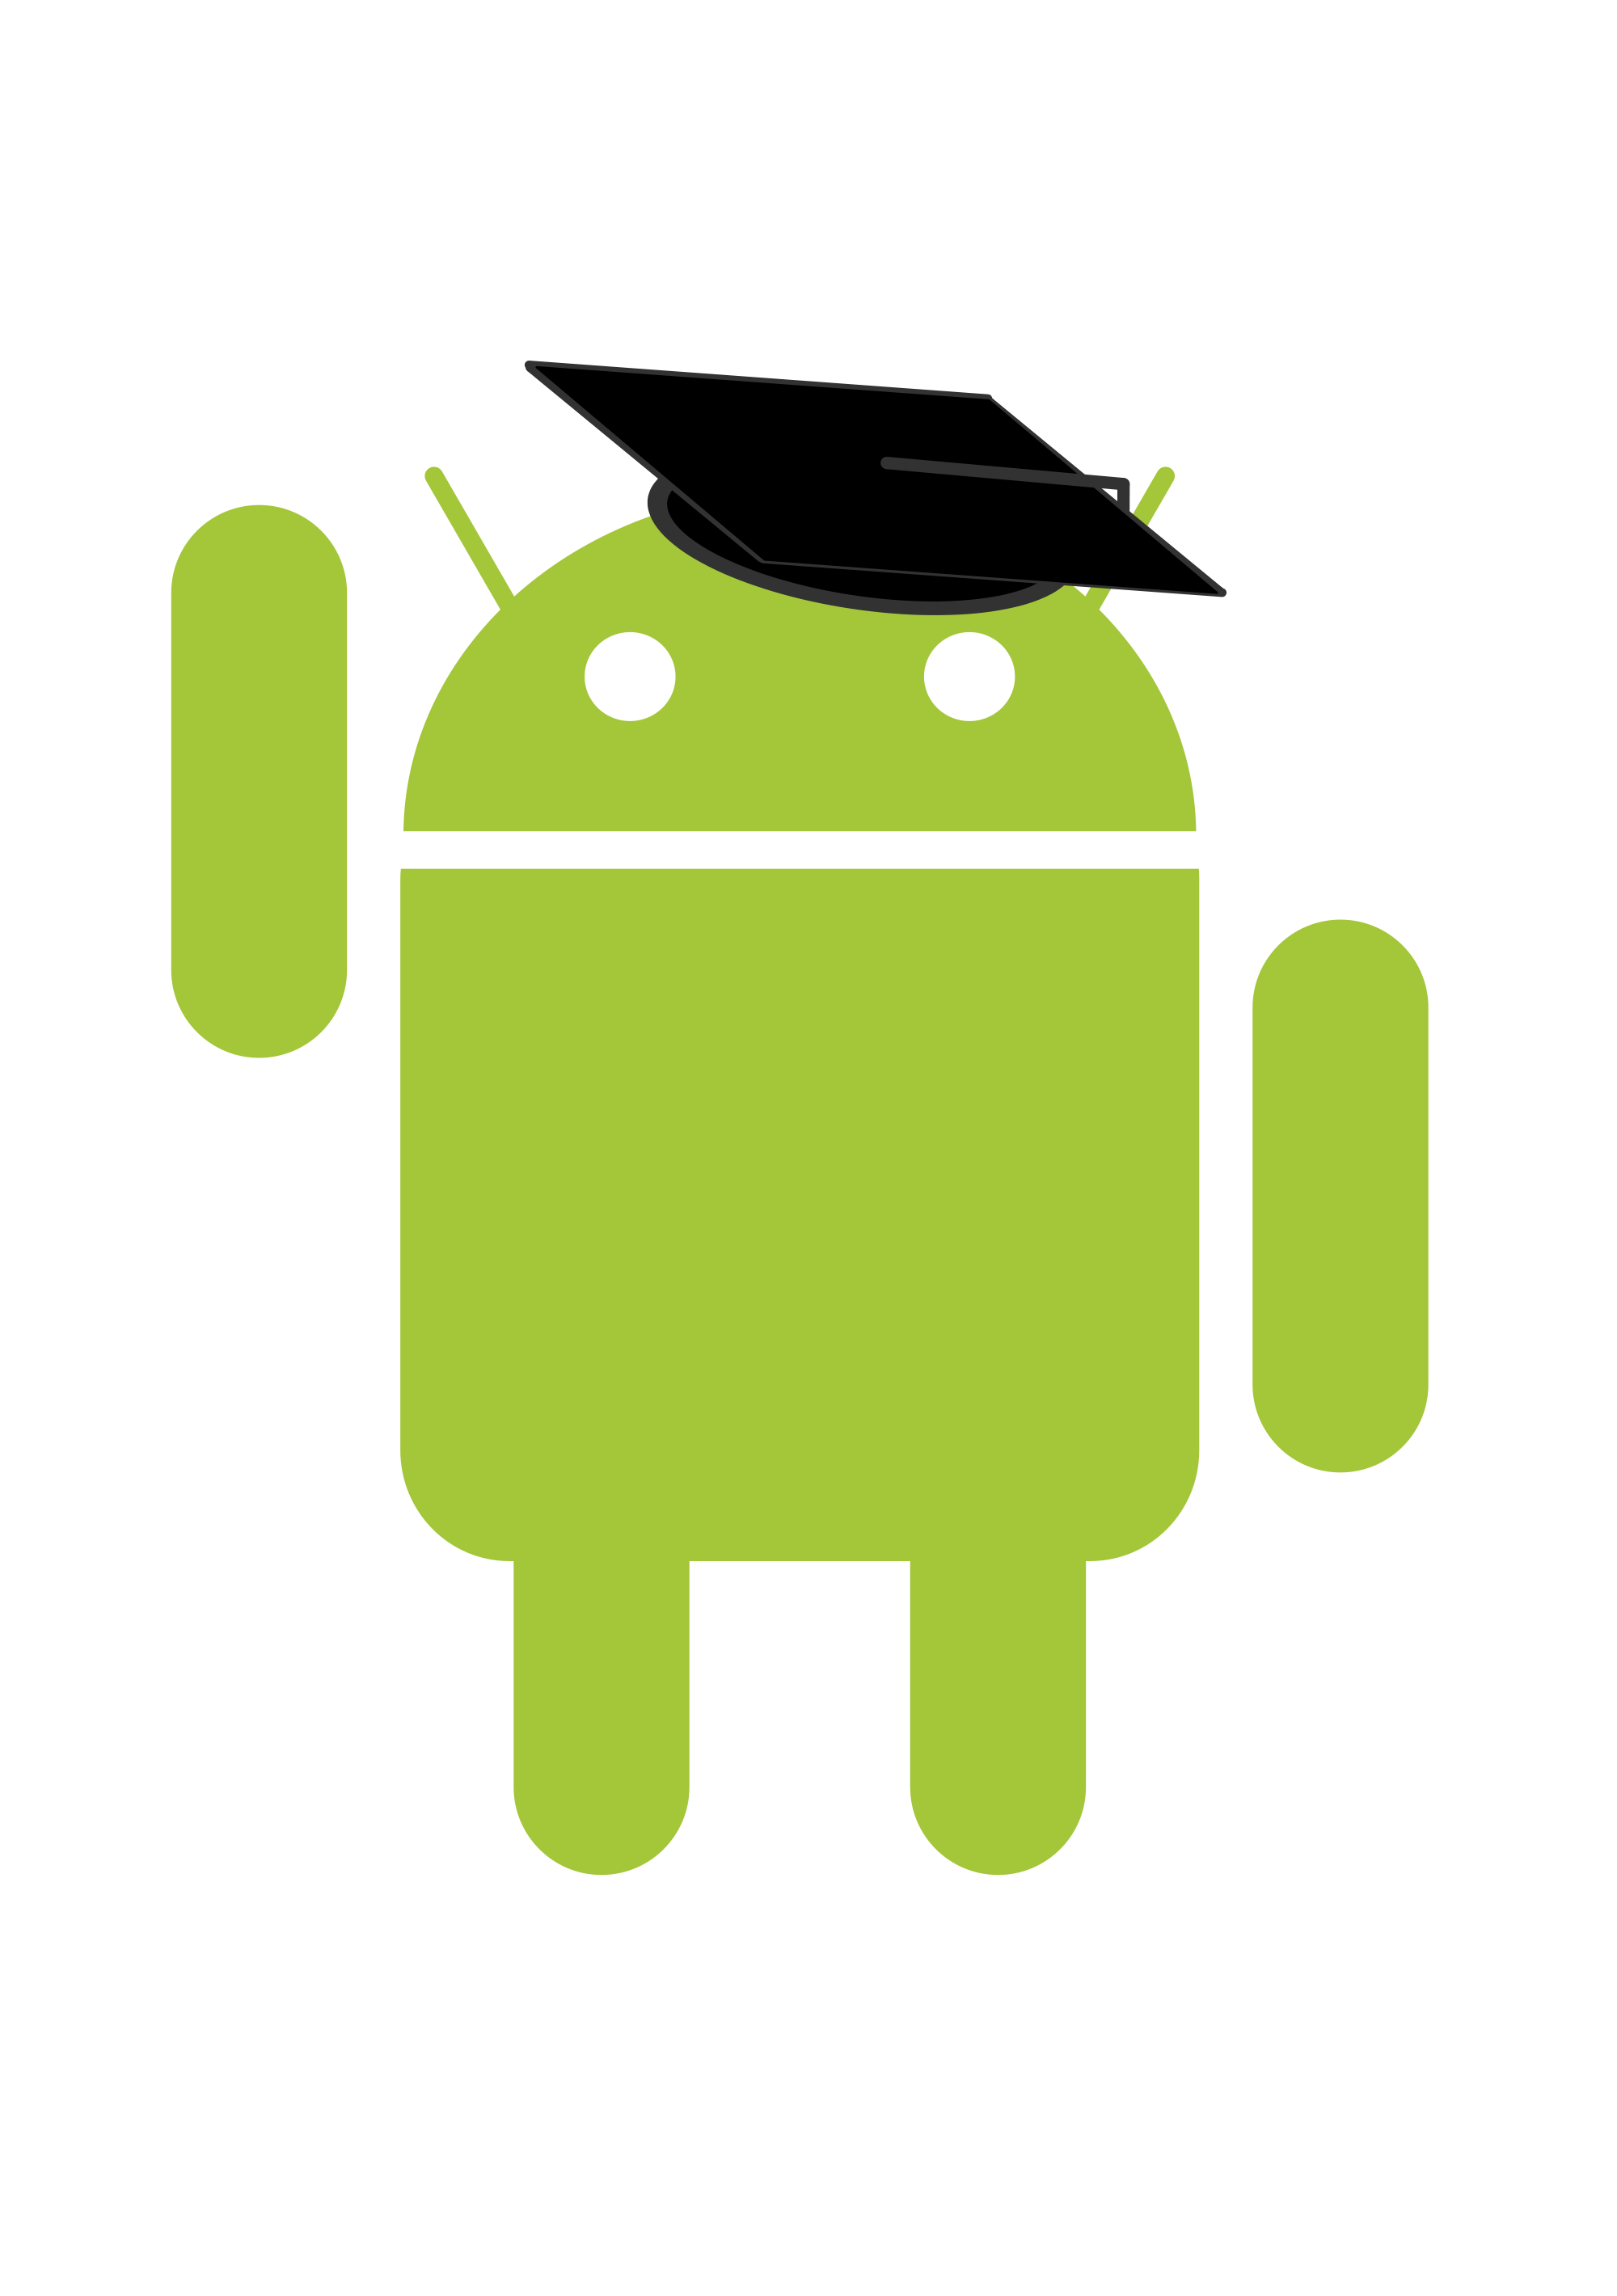 free download File school wikimedia commons. Using svg android